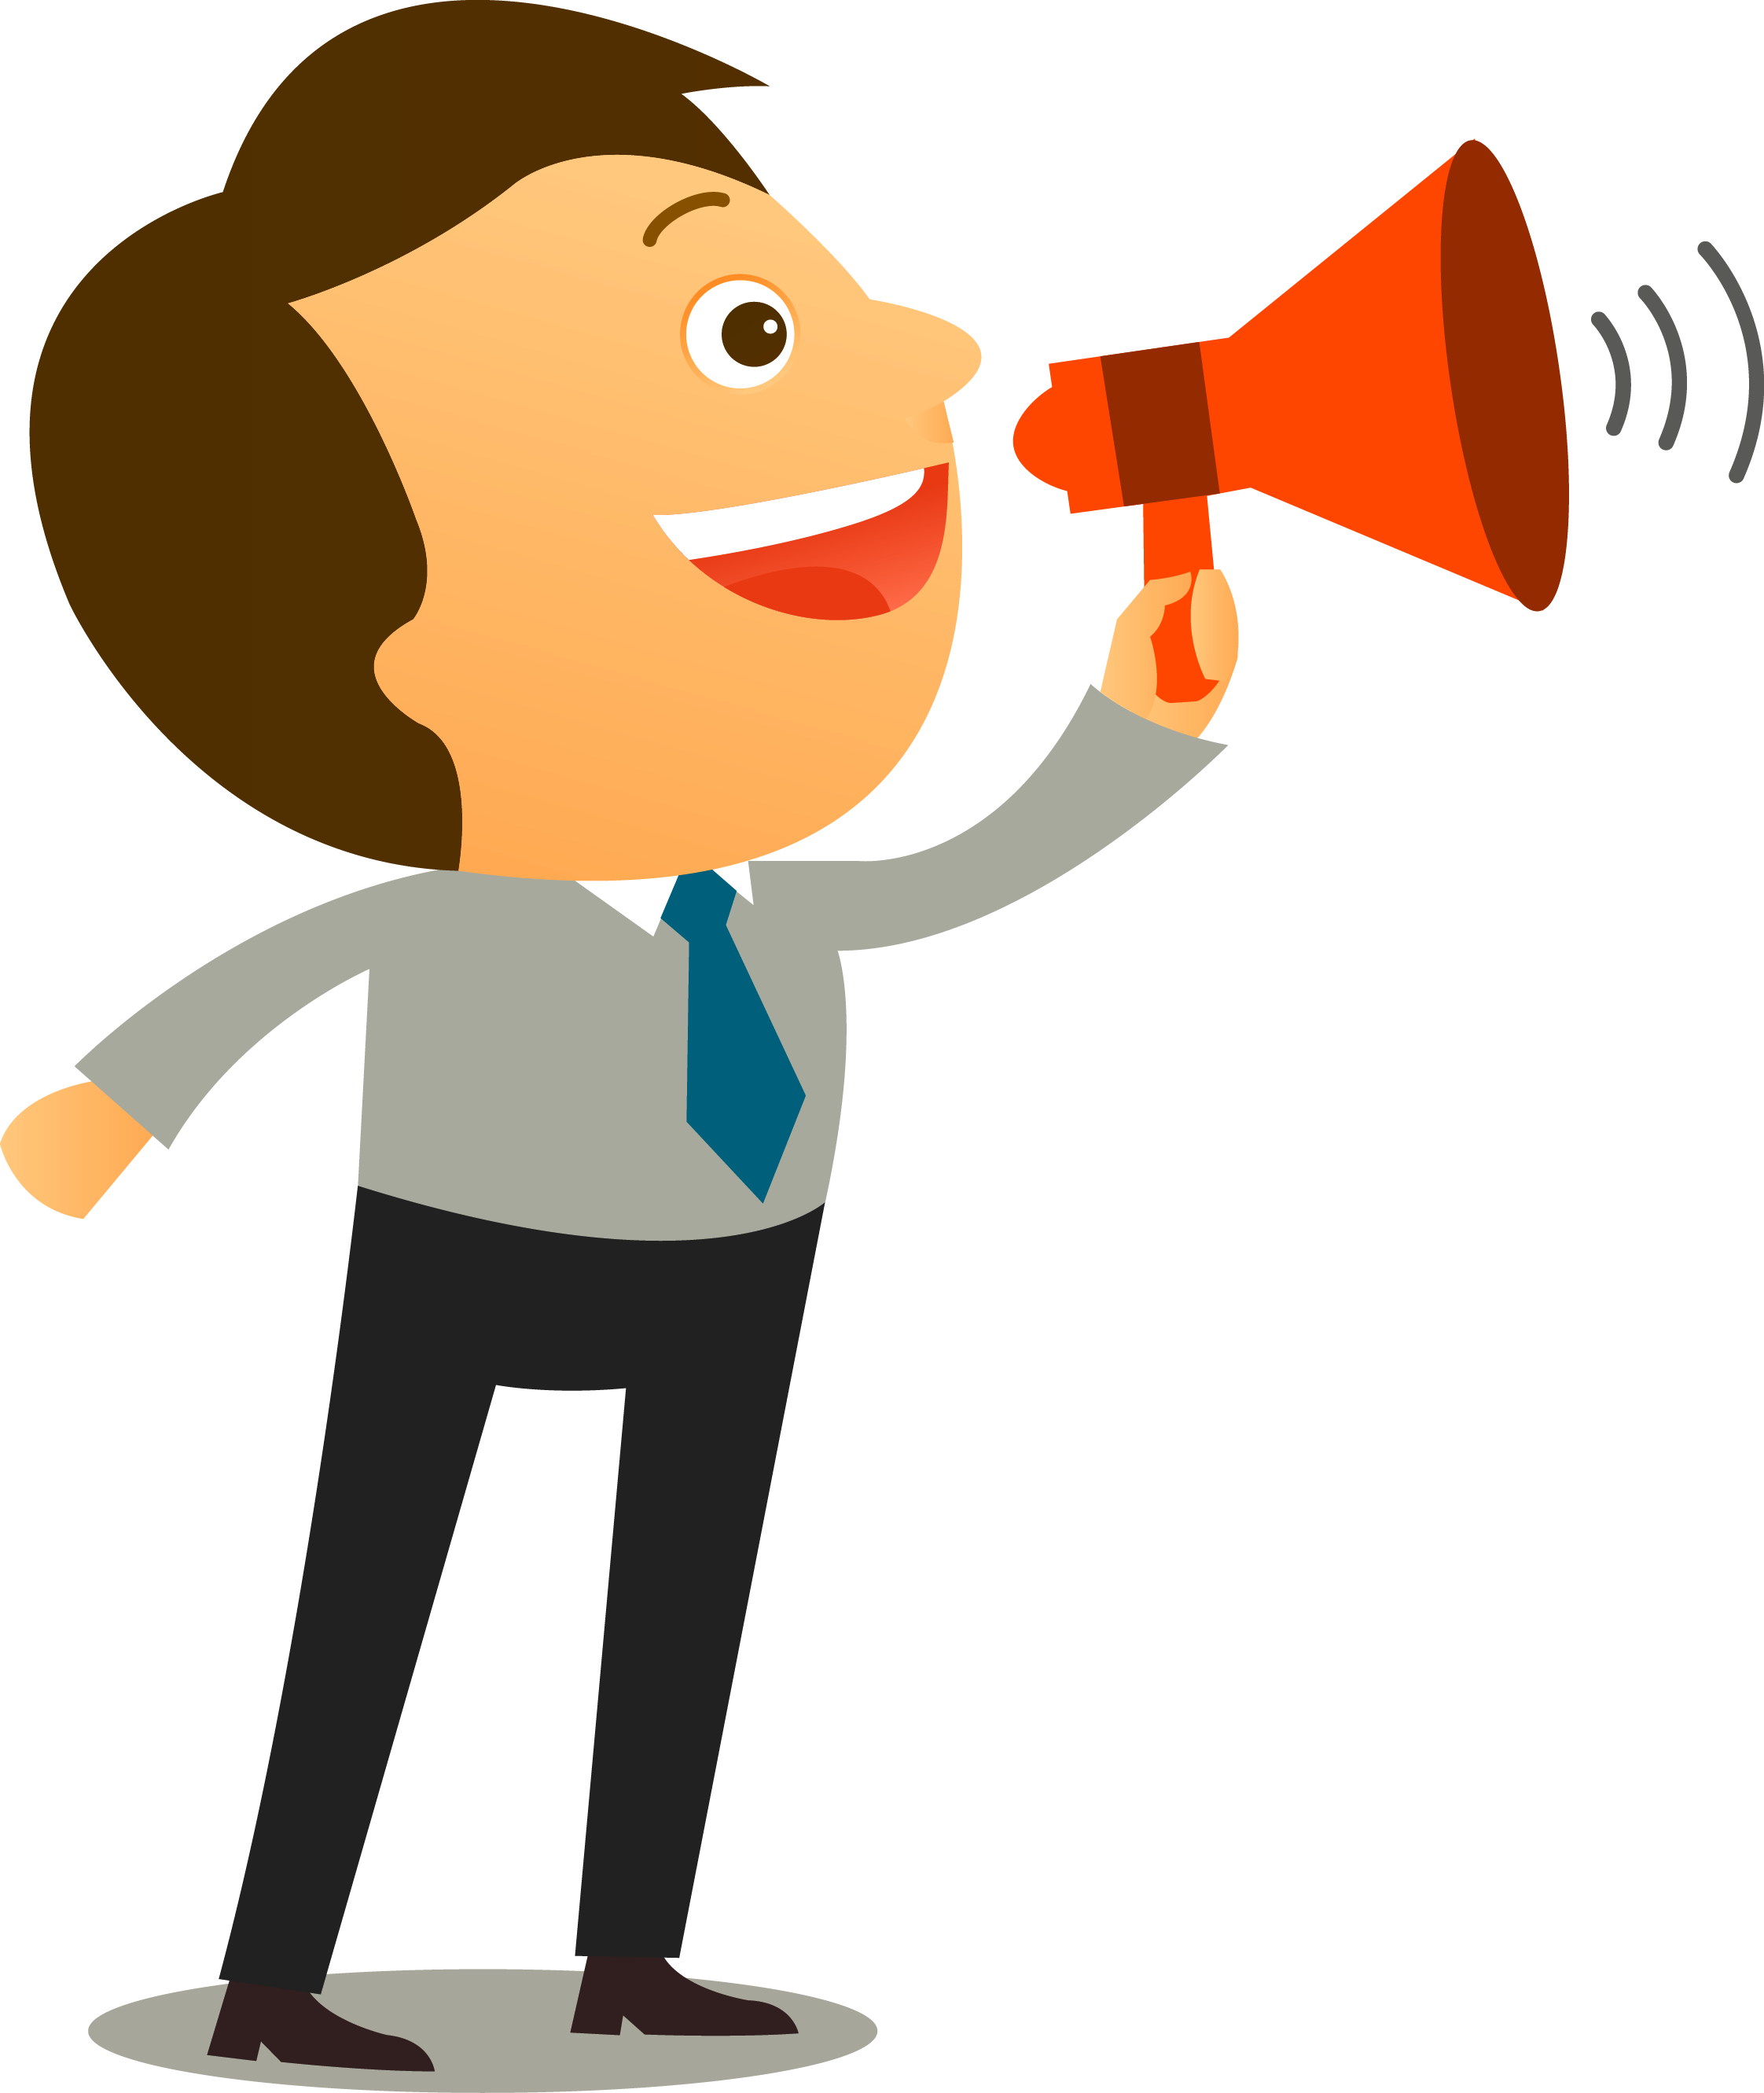 Megaphone man png. Assertiveness communication coaching interpersonal